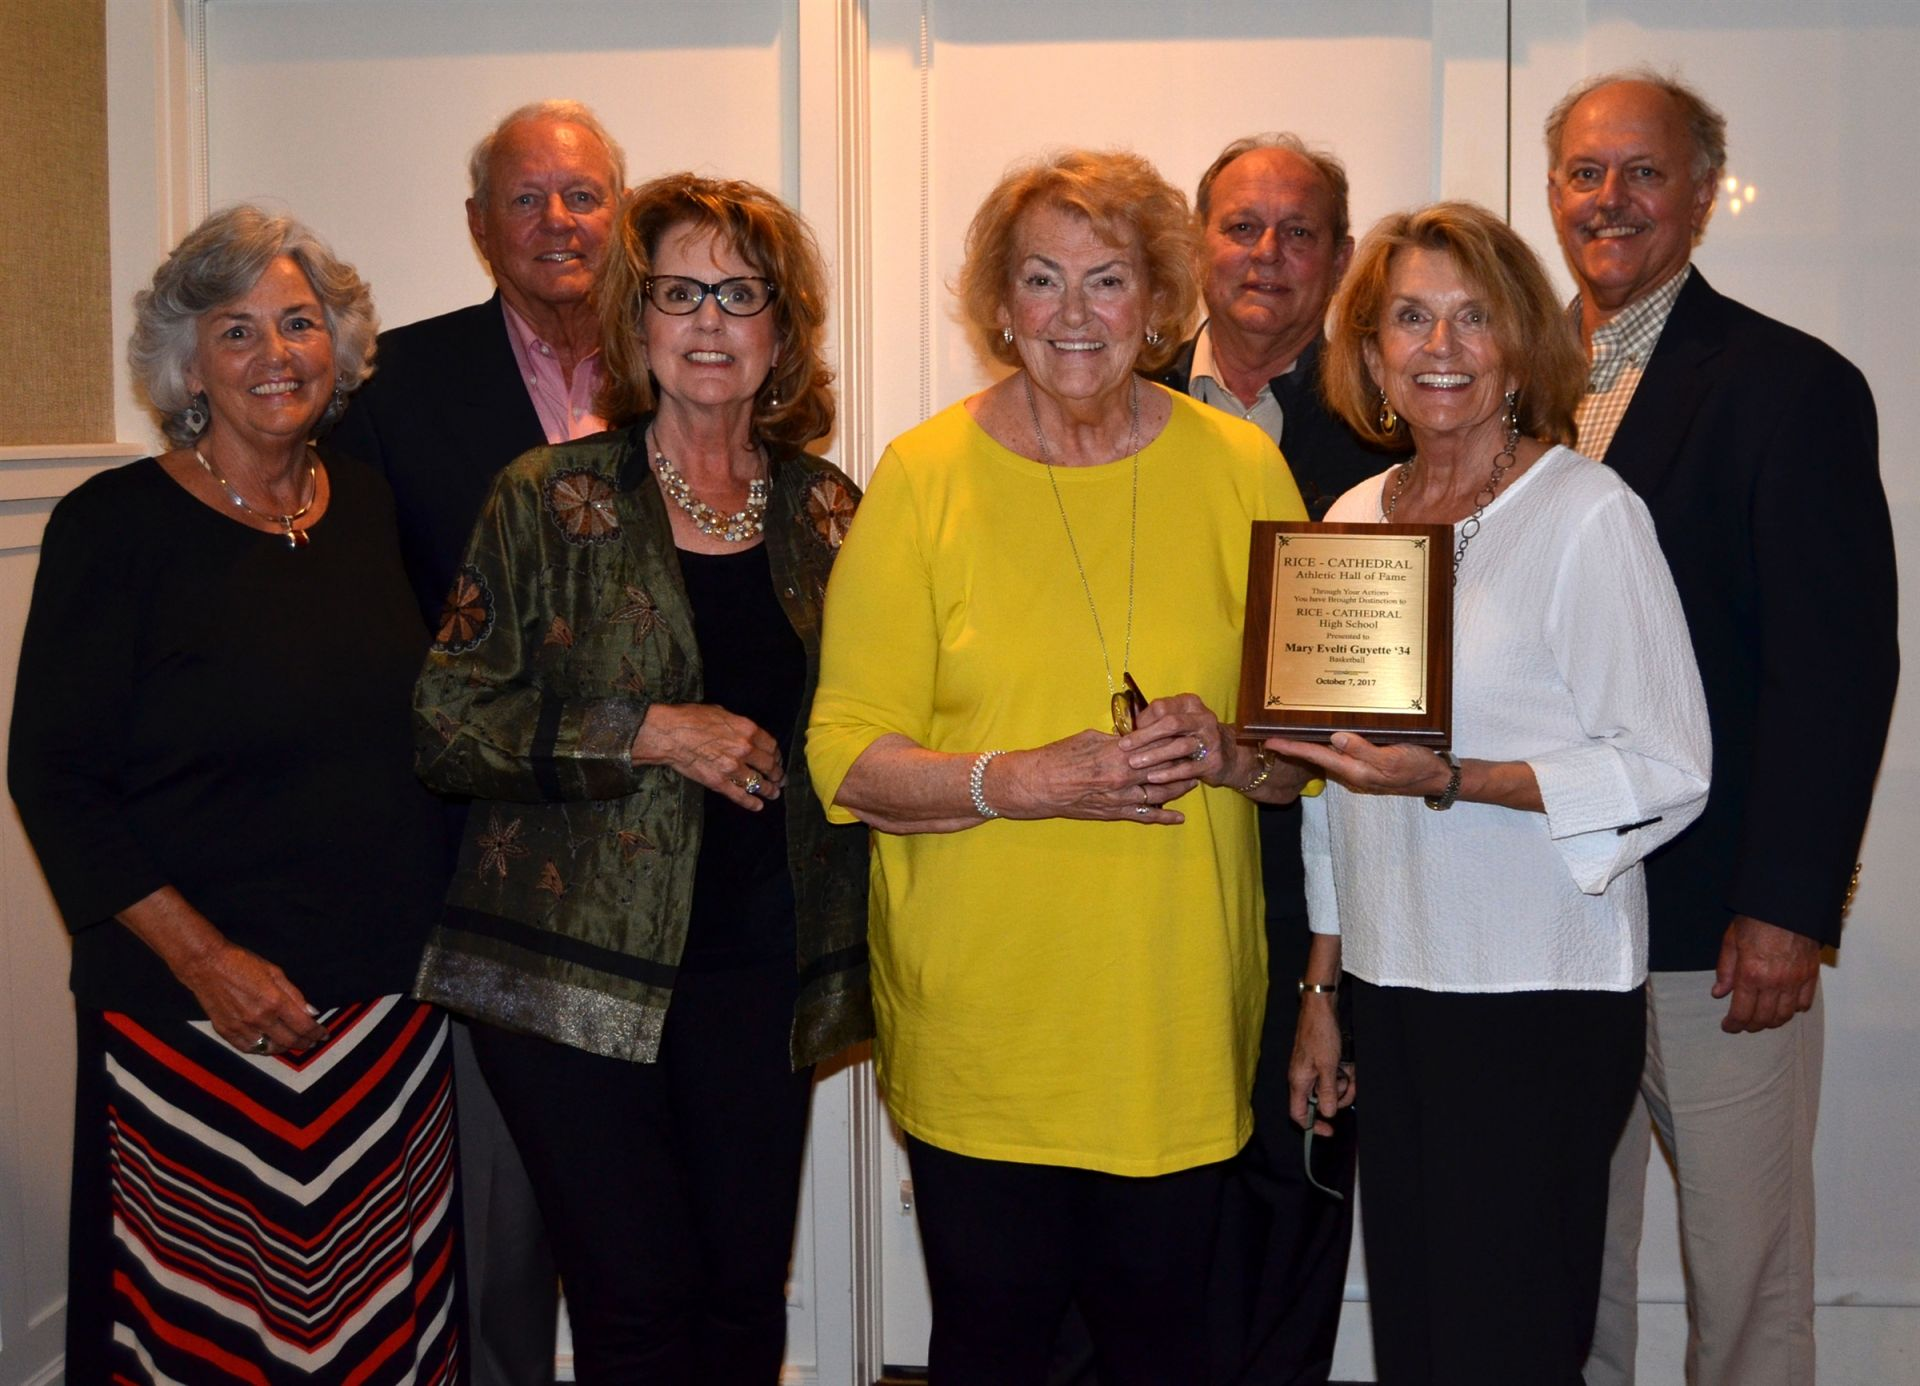 Mary Evelti Guyette's 7 children accepted her induction award on the family's behalf.